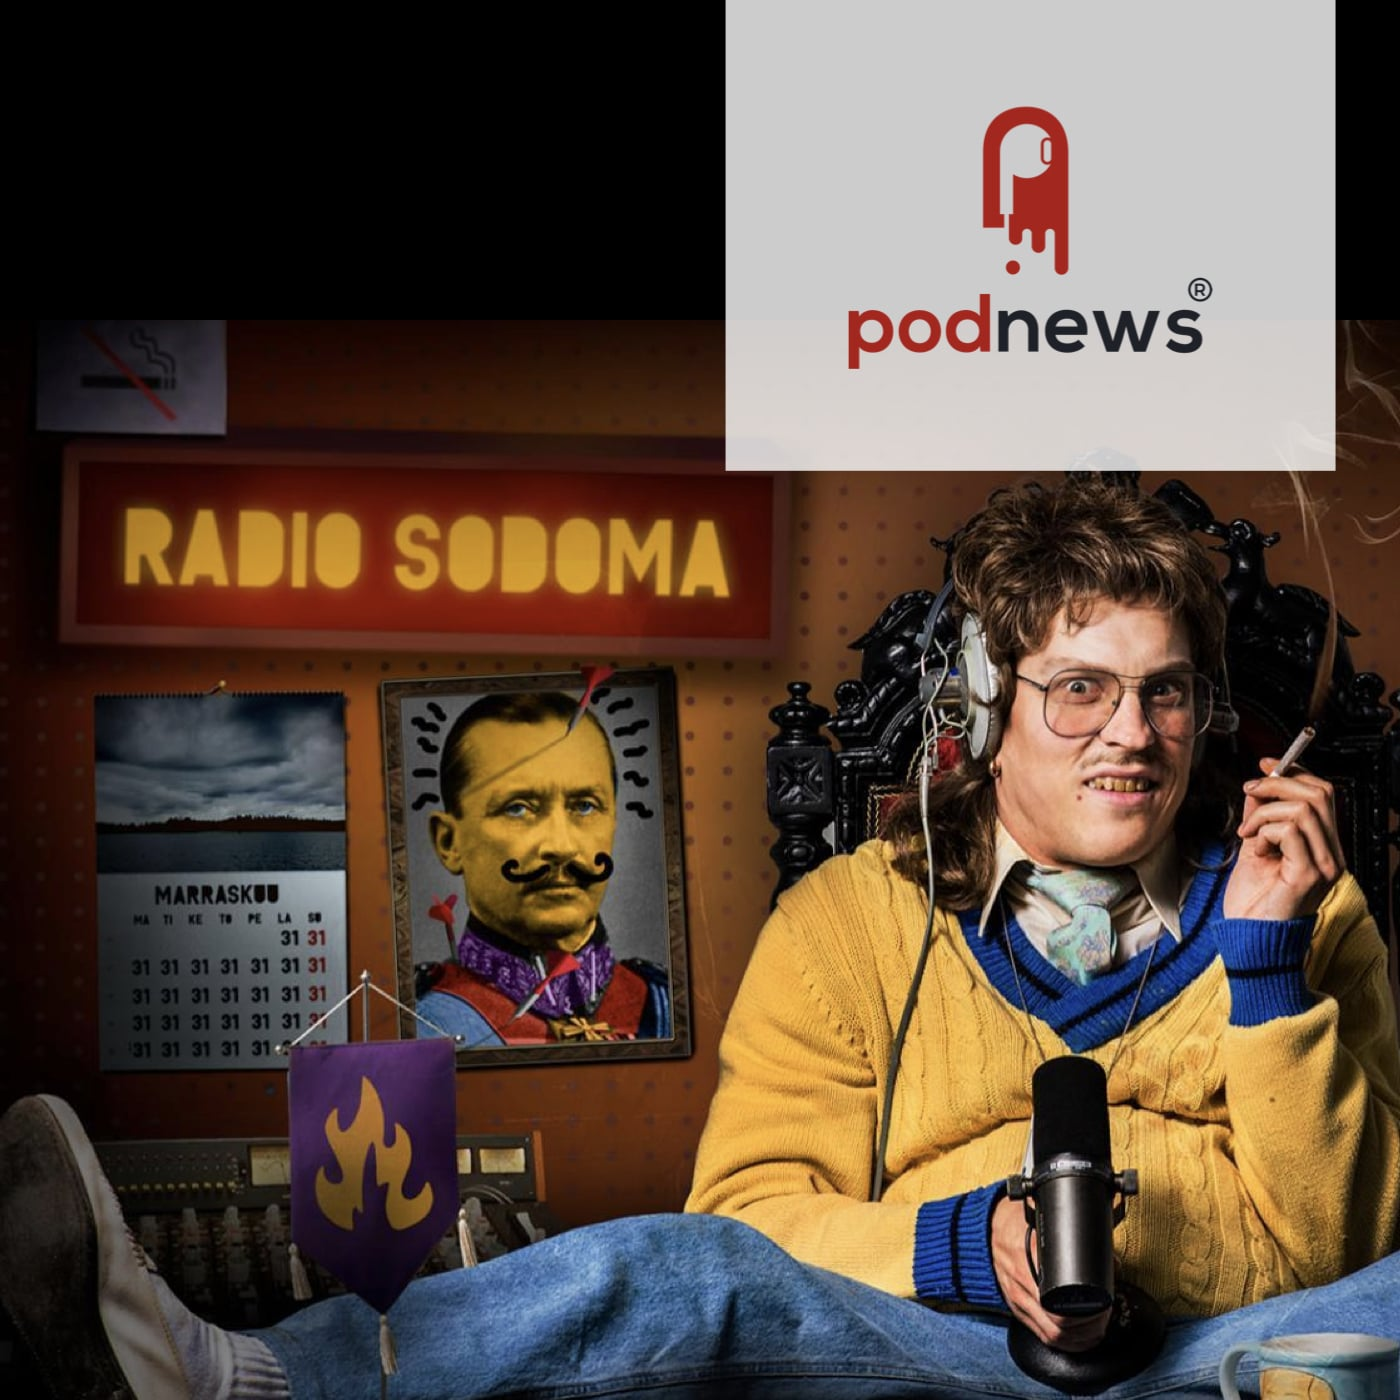 Radio Sodoma tops the charts in Finland; introducing 'microcasts'